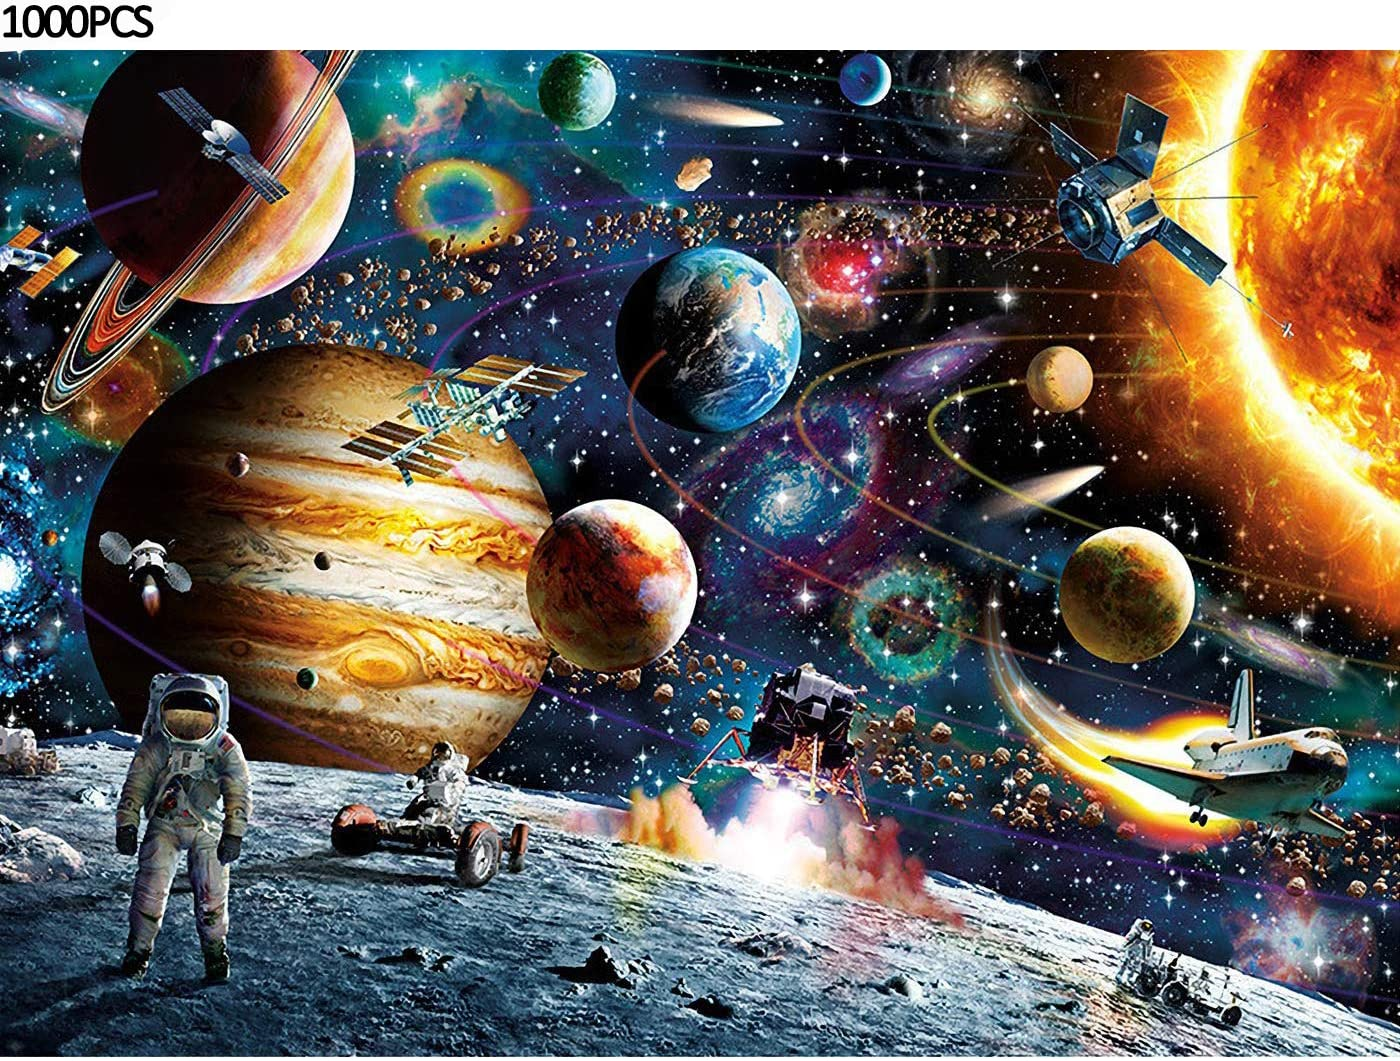 Puzzles for Adults, Planets in Space Jigsaw Puzzles 1000 Pieces, Puzzles for Kids, Gifts for Kids Home Decor